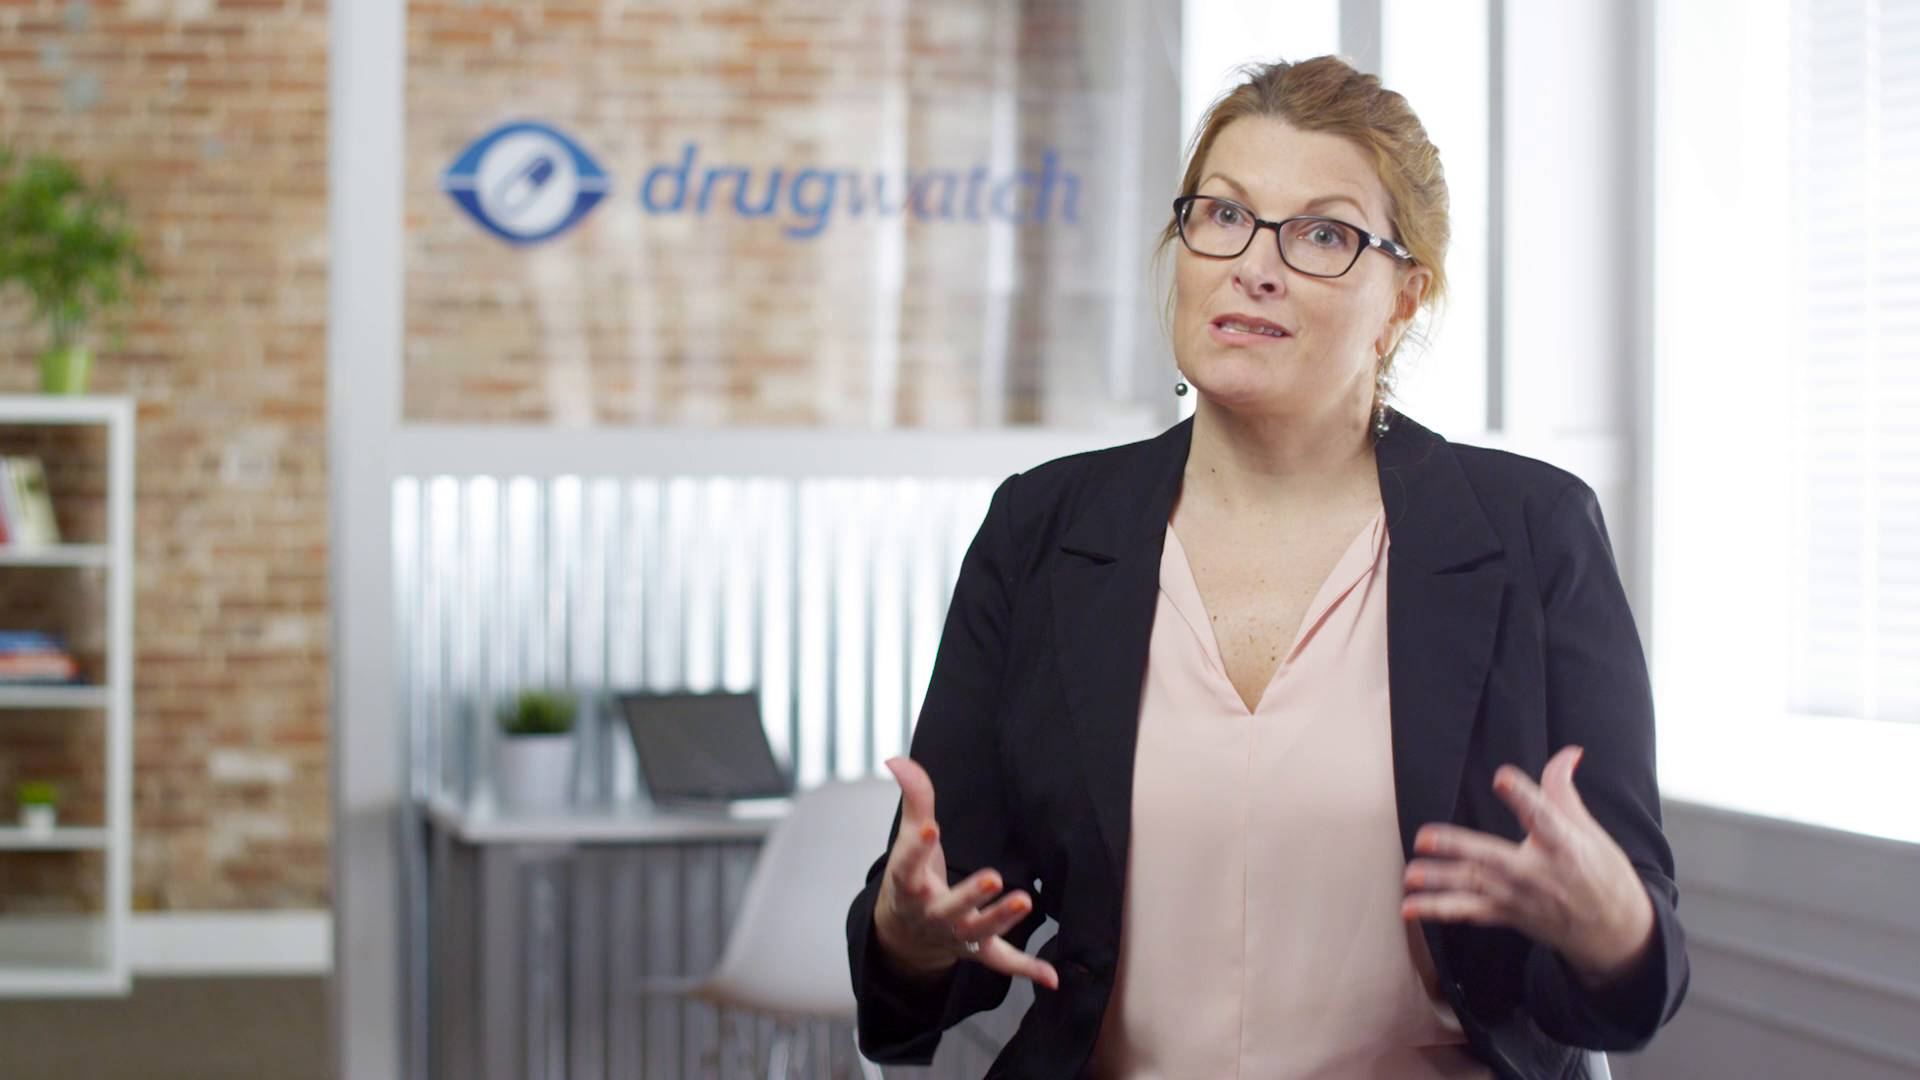 Madris Tomes describes flaws in the FDA reporting systems to Drugwatch.com